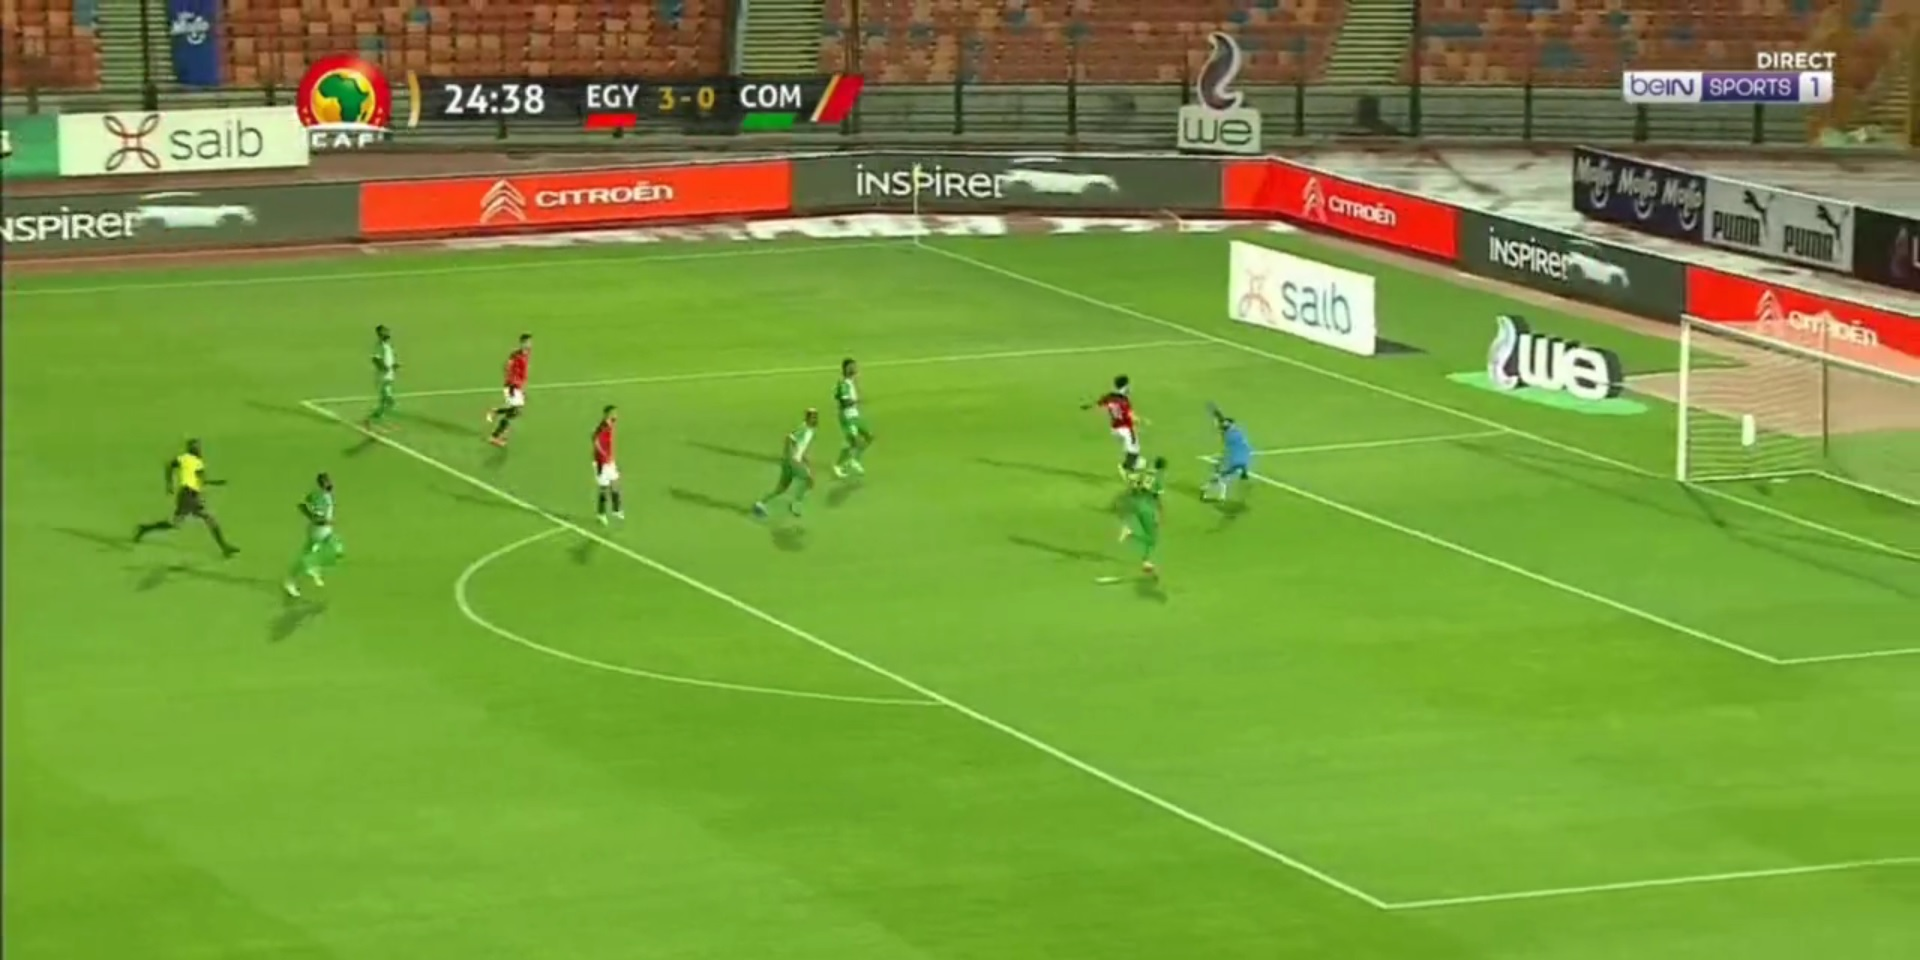 (Video) Mo Salah bags quick-fire brace as Egypt fly in AFCON qualifier